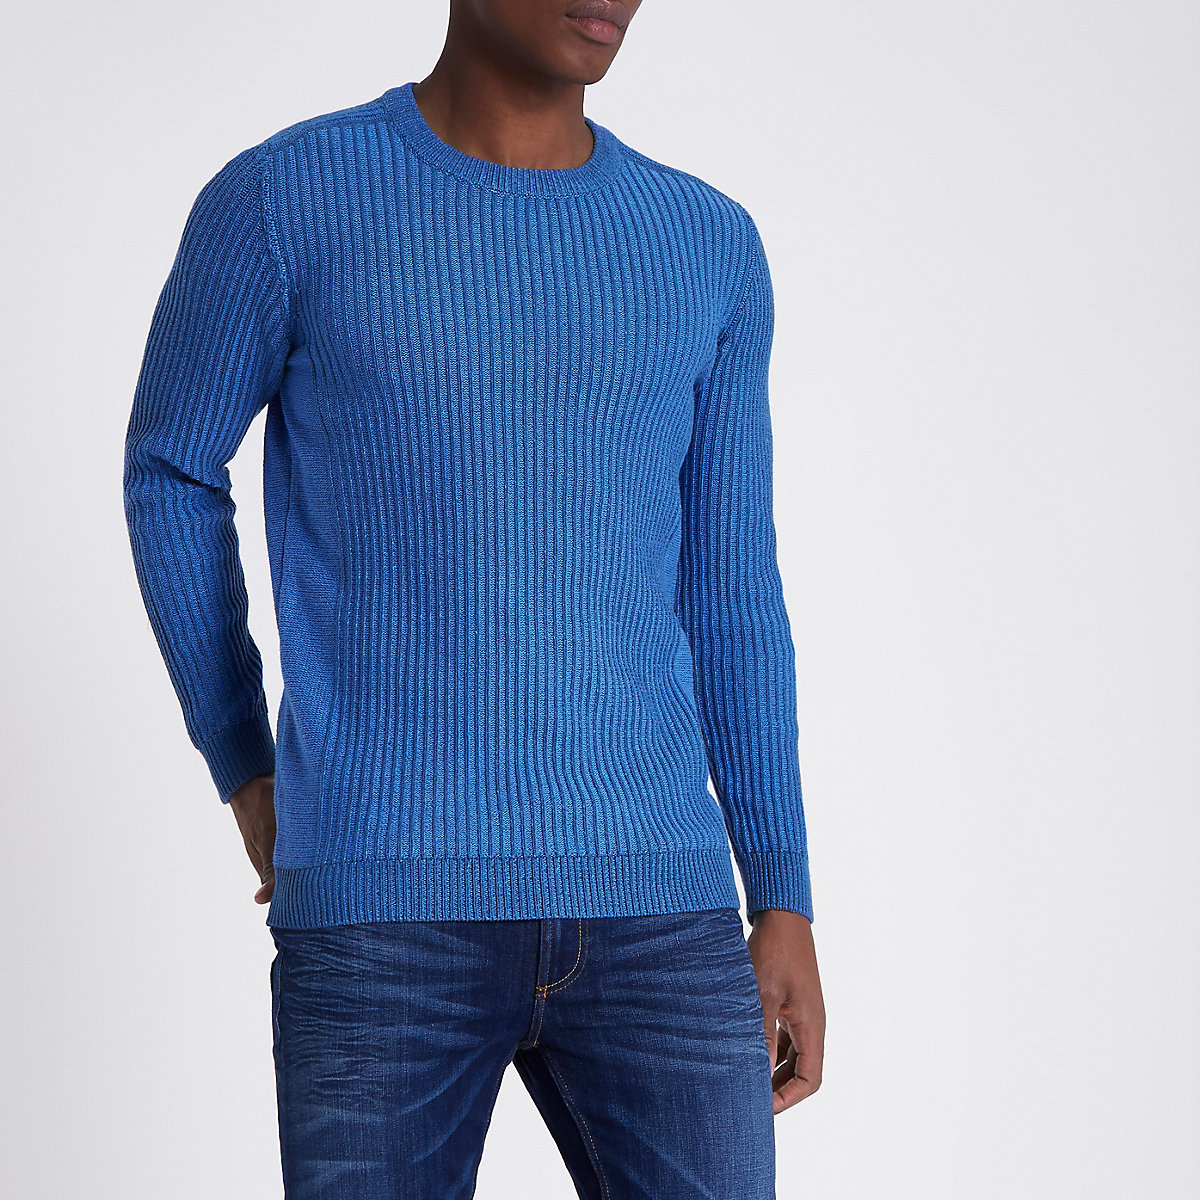 Blue rib knit muscle fit sweater